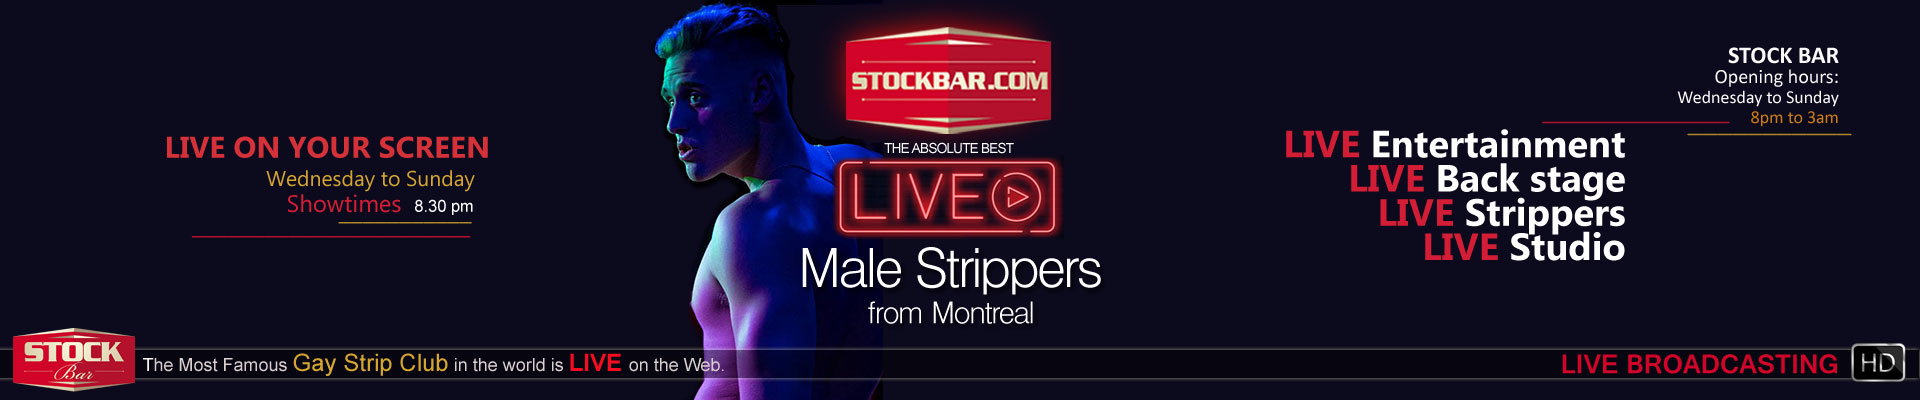 Gay Male Strip Club